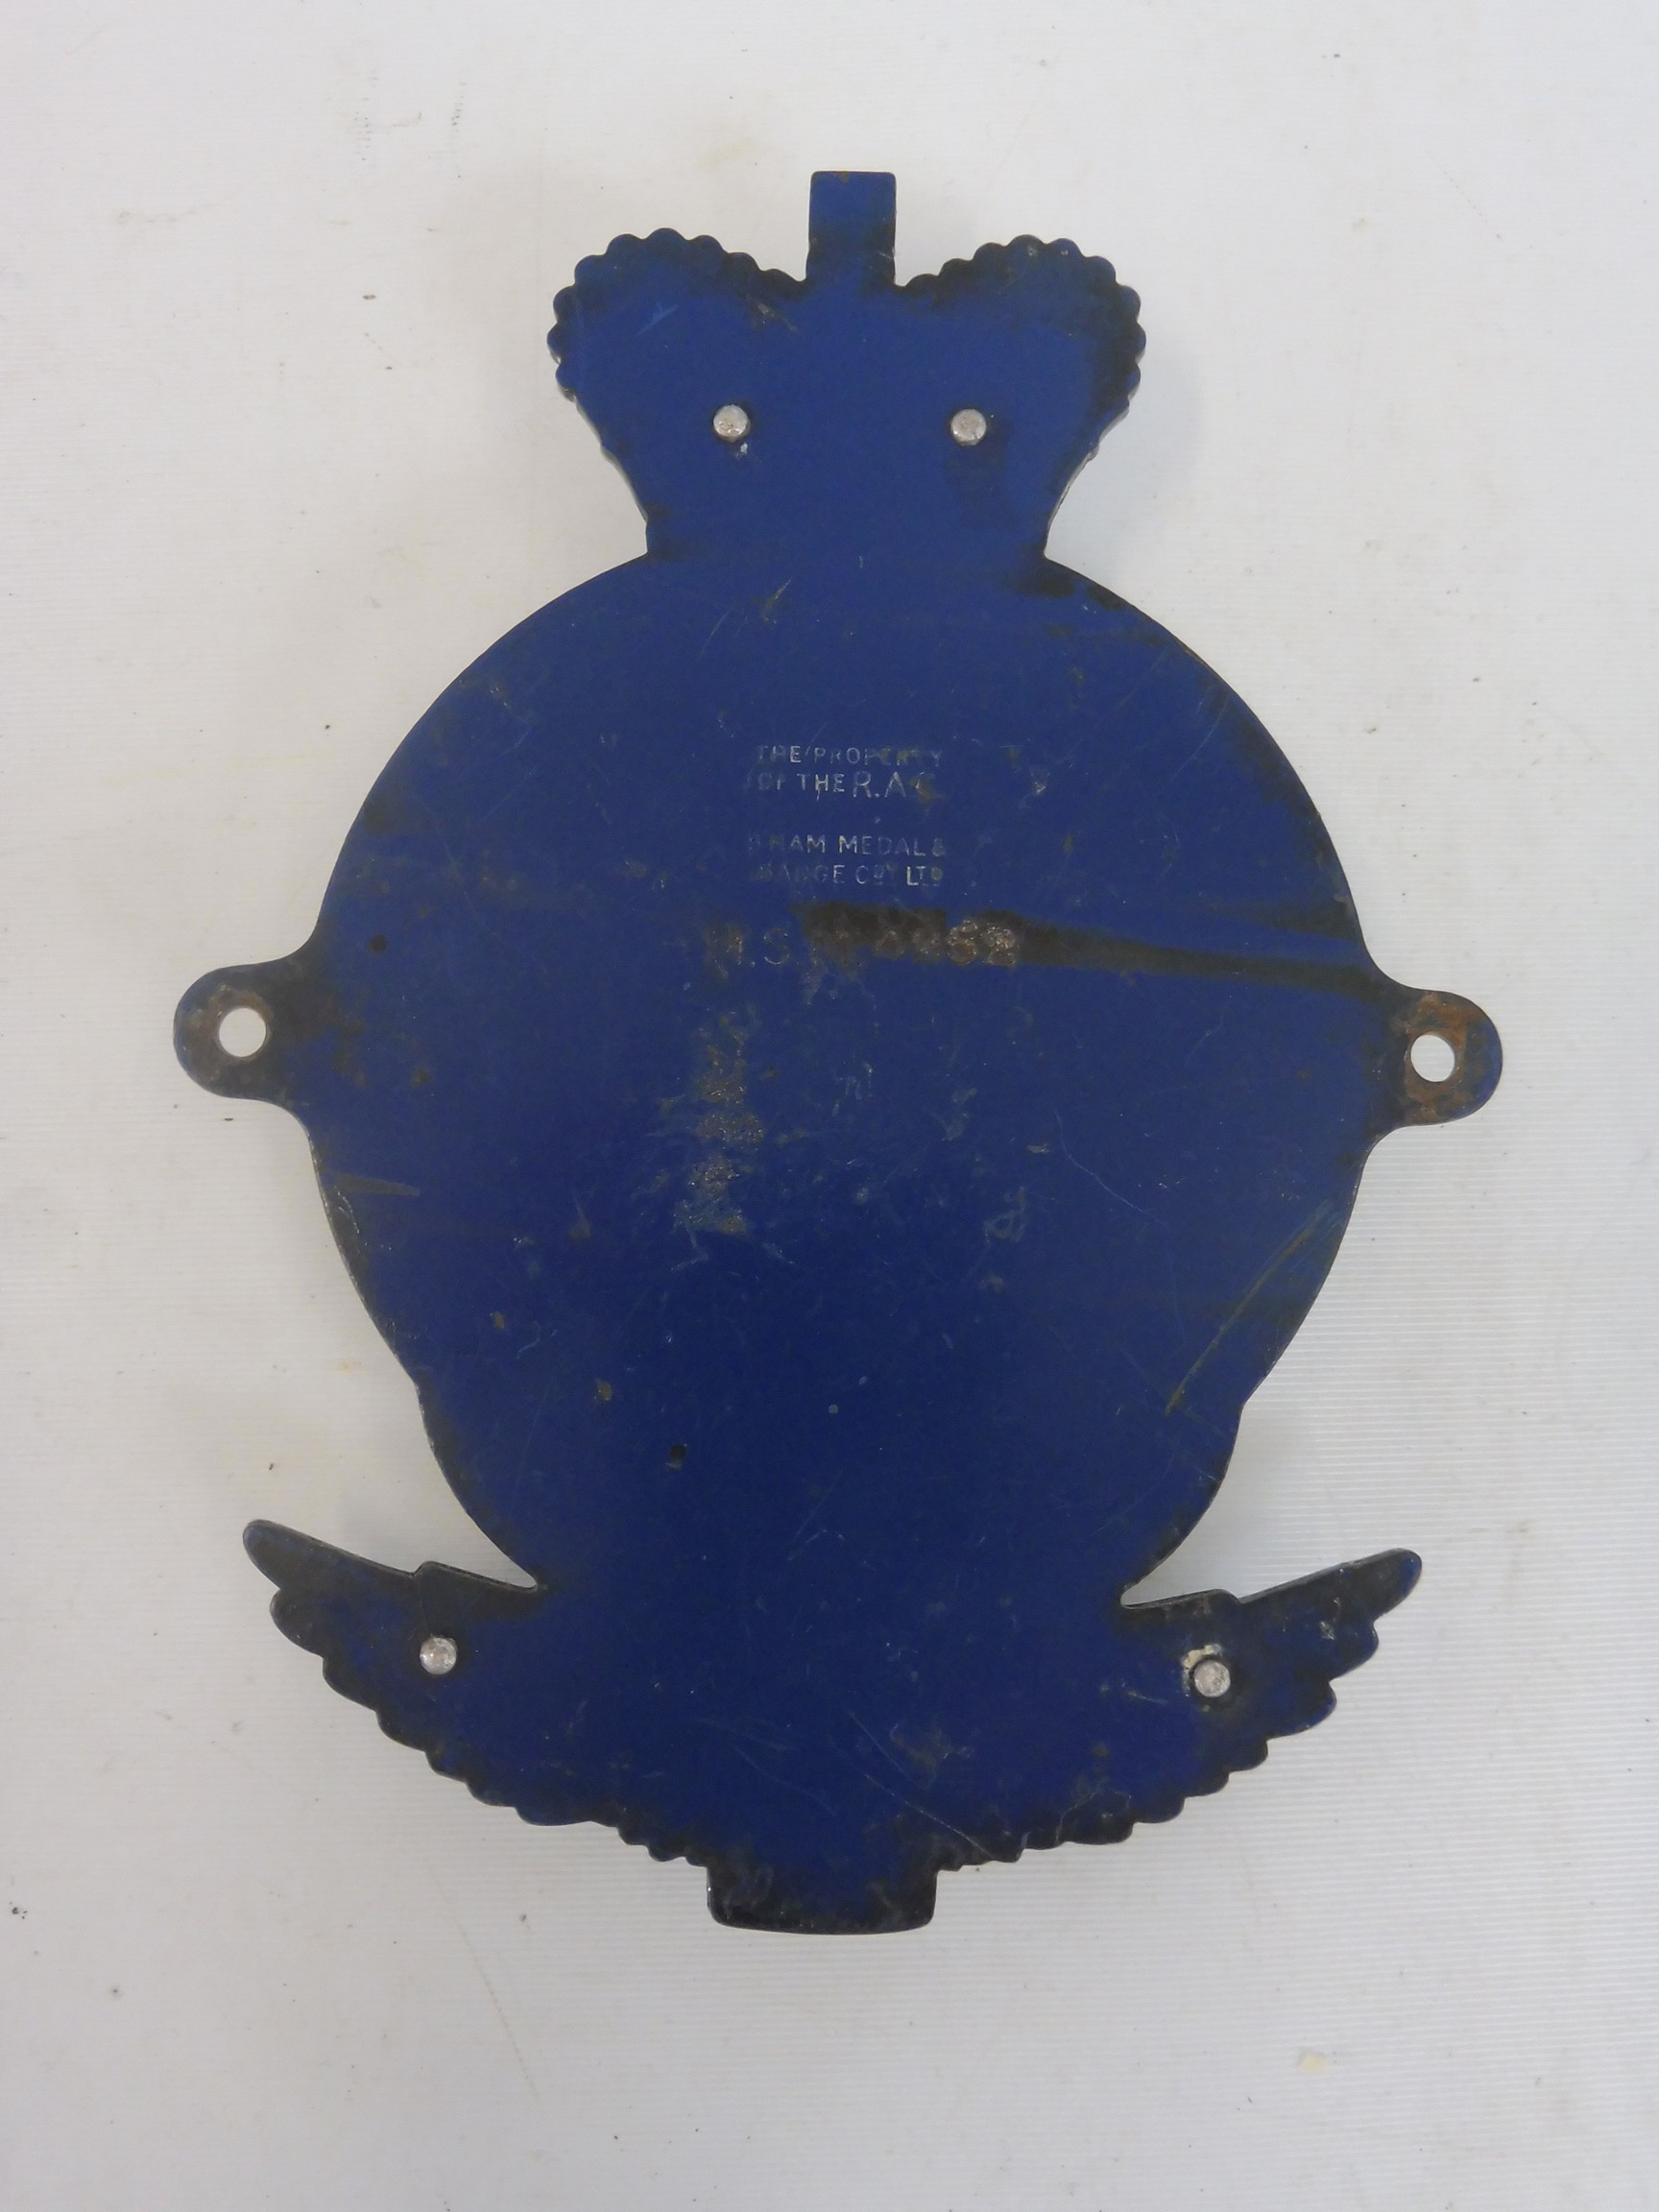 An RAC Motor Sport Member car badge, type 3 1955 - early 1960s, radiator type, chrome plated brass - Image 3 of 3